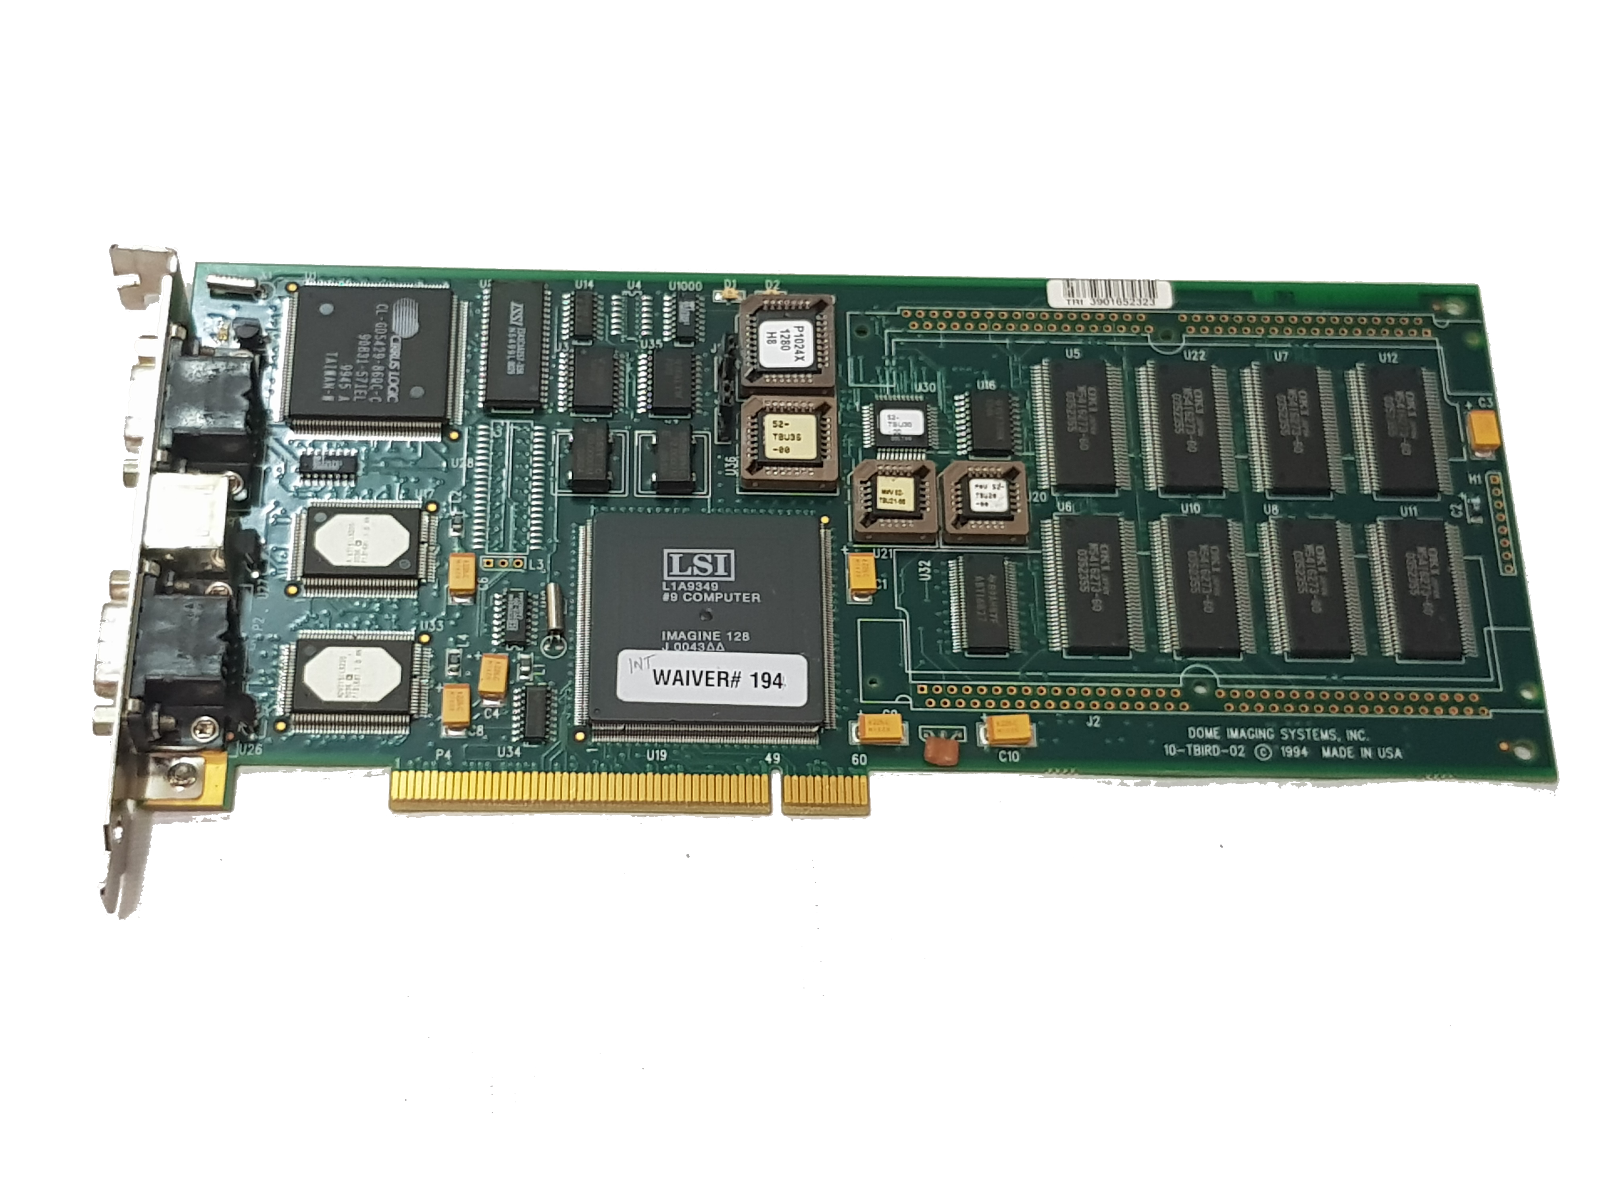 55-MD2PCI2-0A Dome Imaging Systems 10-TBIRD-02 Medical Video Card P1E-32341